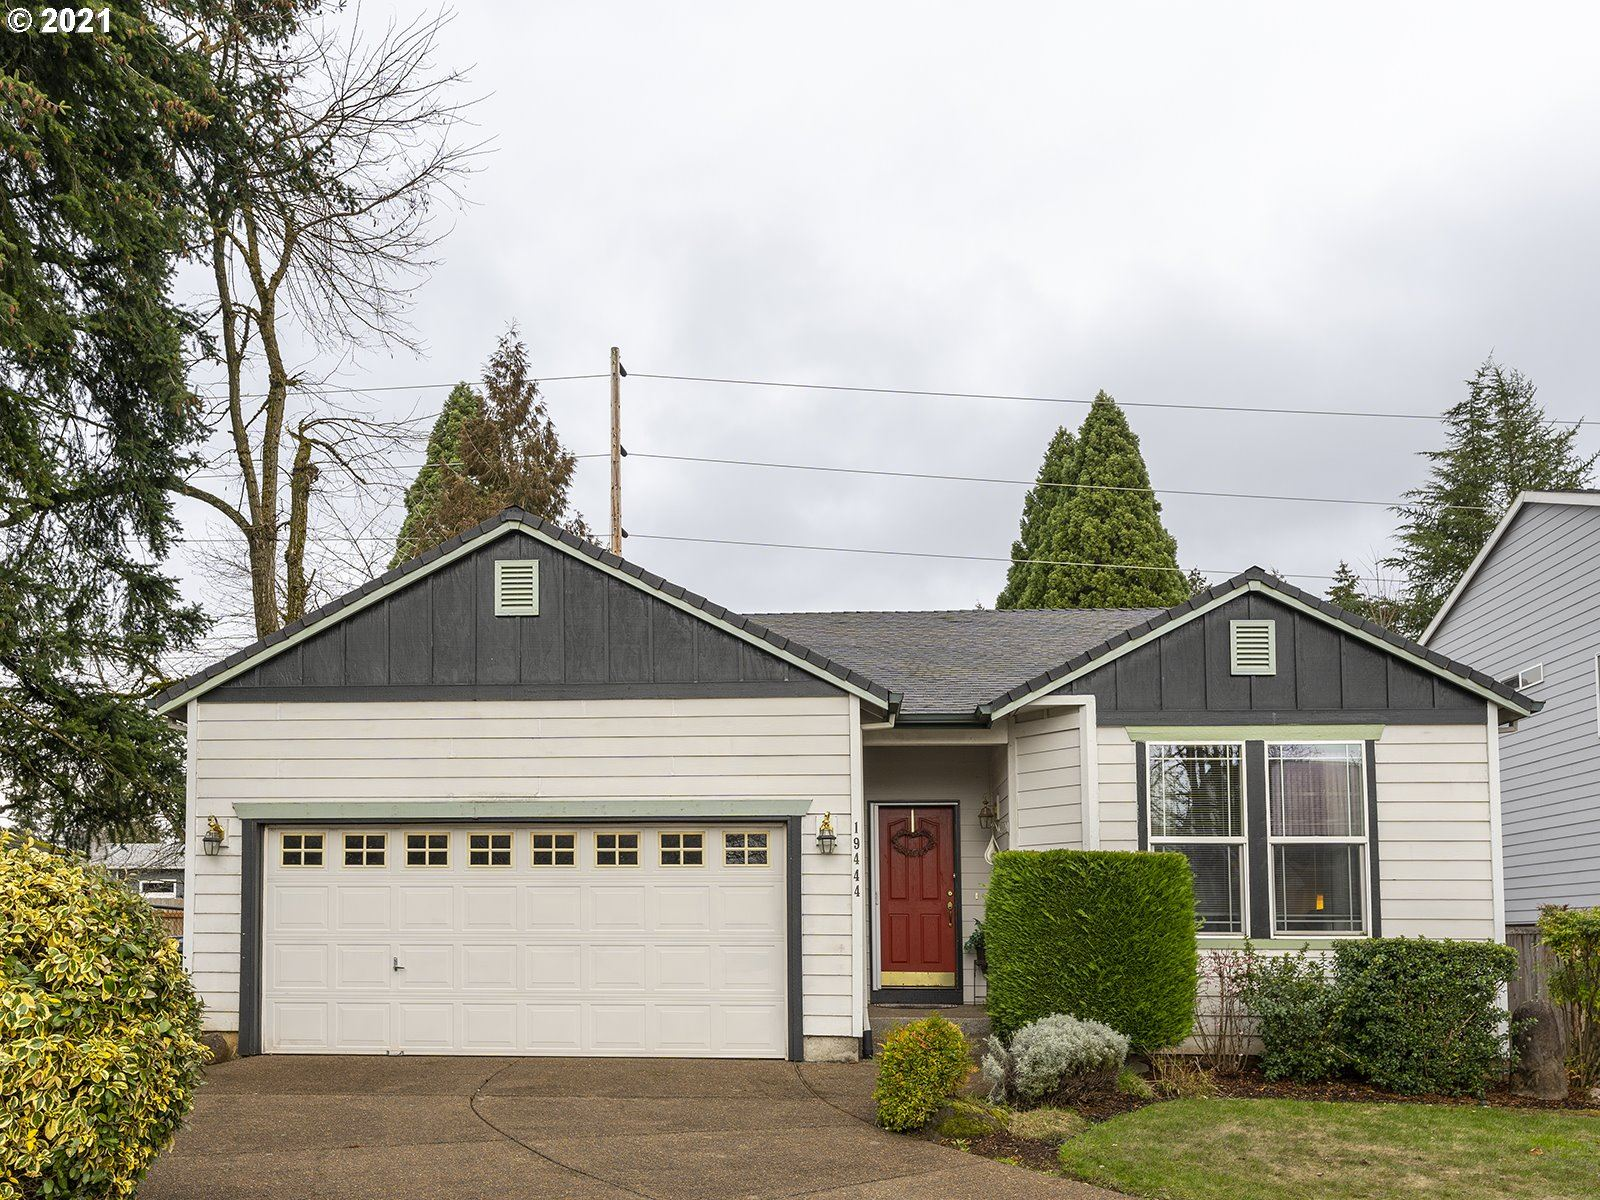 Photo for 19444 WOODLANDS TER, Oregon City, OR 97045 (MLS # 21026257)